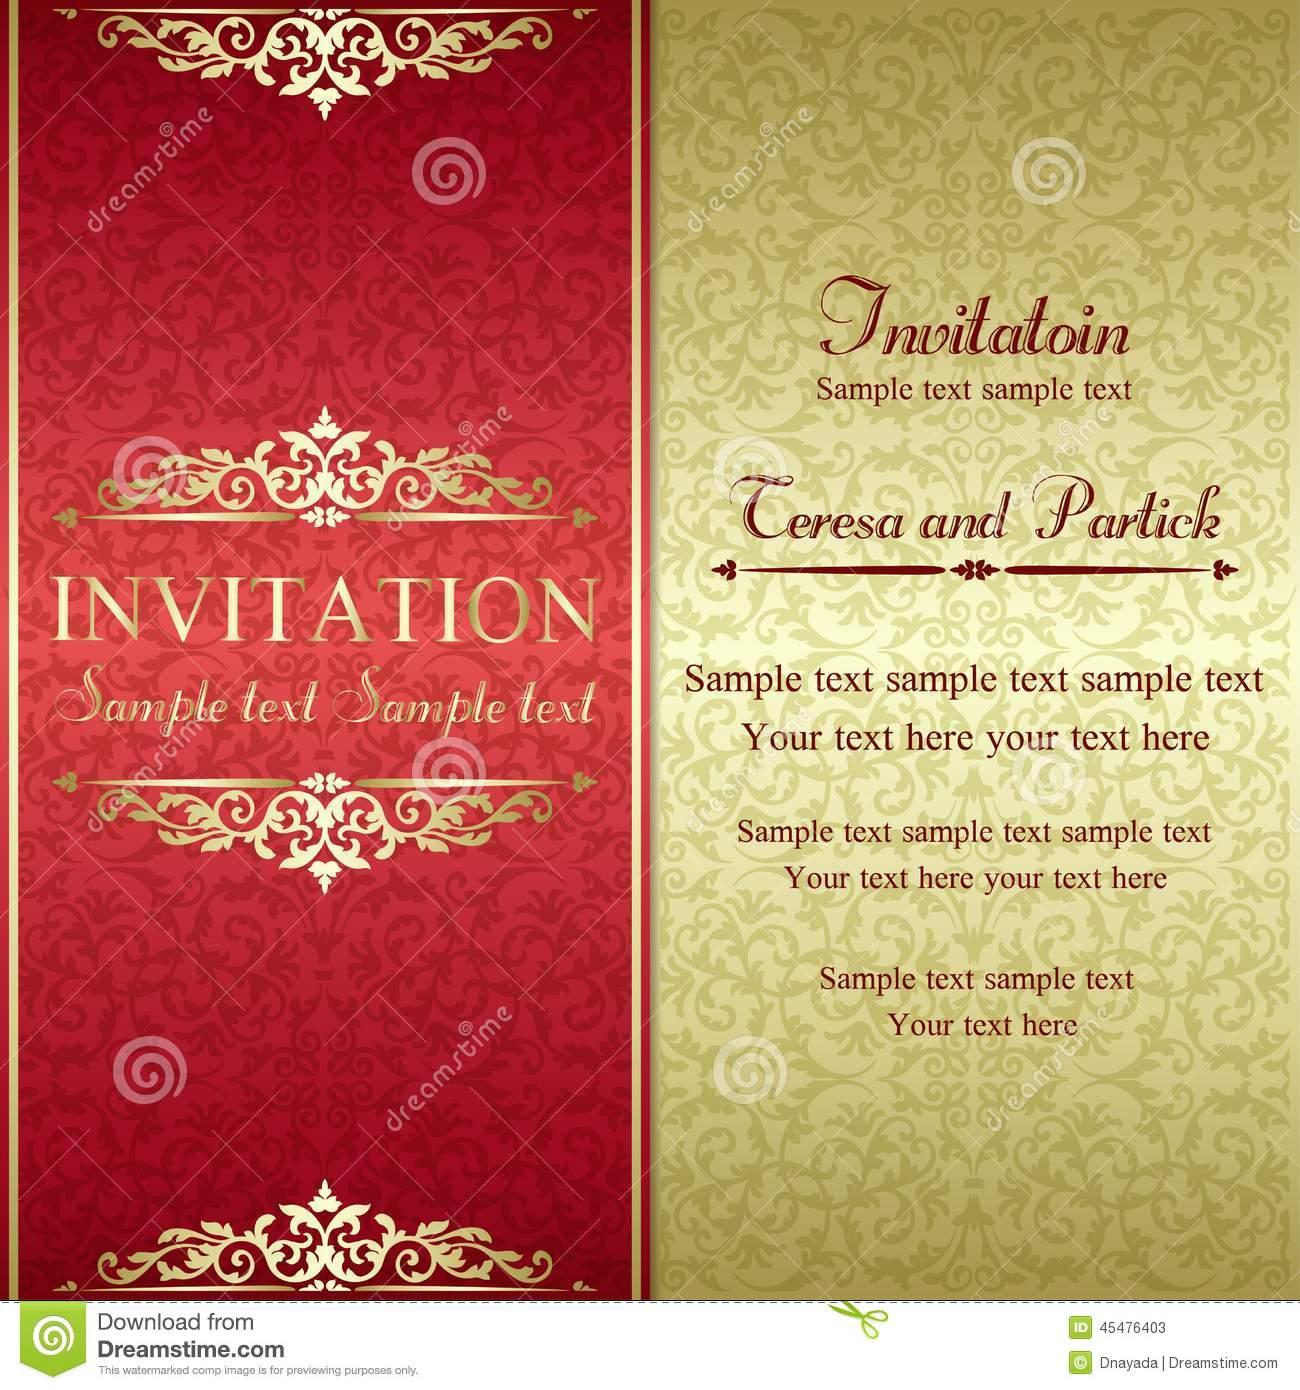 red and gold invitation templates